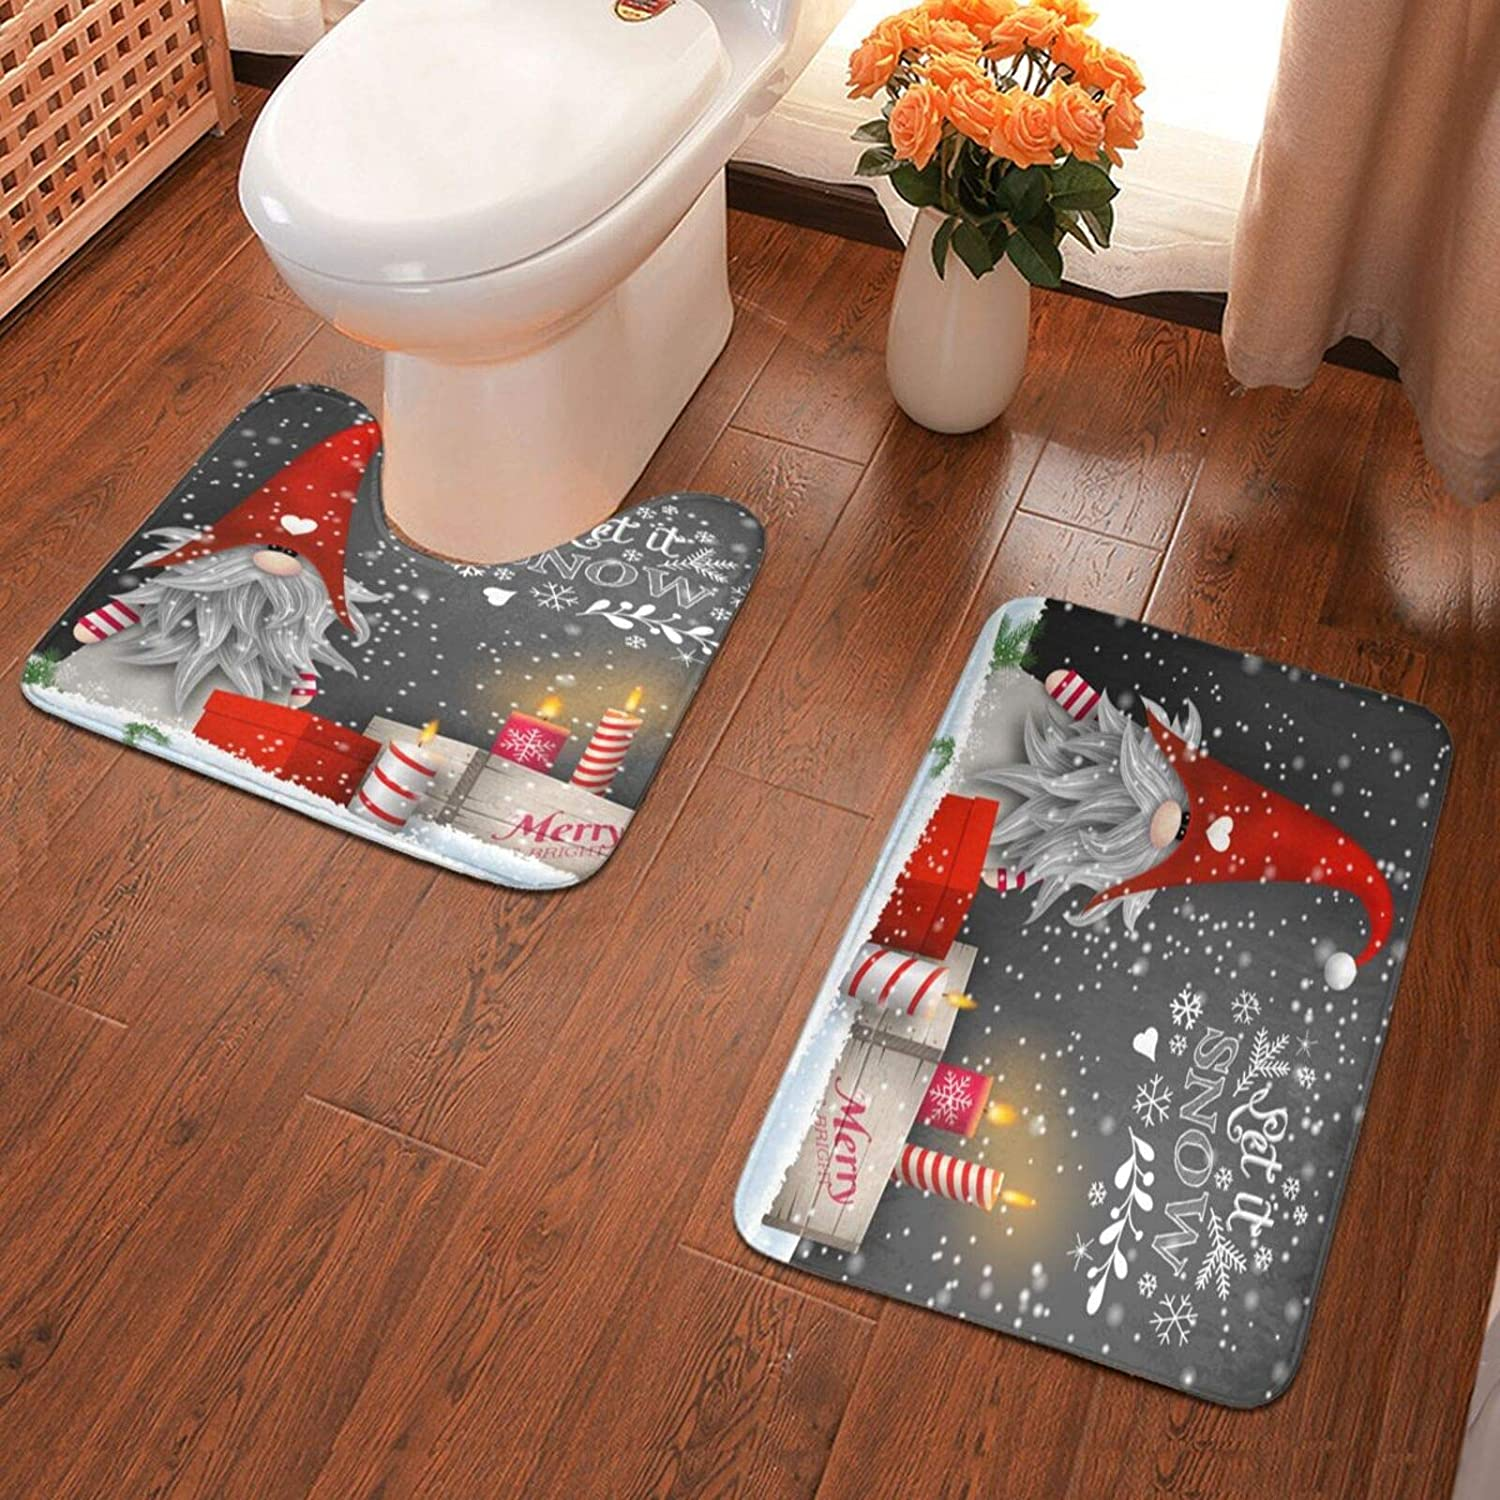 Amazon Com Merry Christmas Gnome Xmas Gifts Winter Snowflakes Bath Rugs Set Of 2 U Shaped Toilet Mat With Non Slip Backing For Bathroom Decor Kitchen Dining